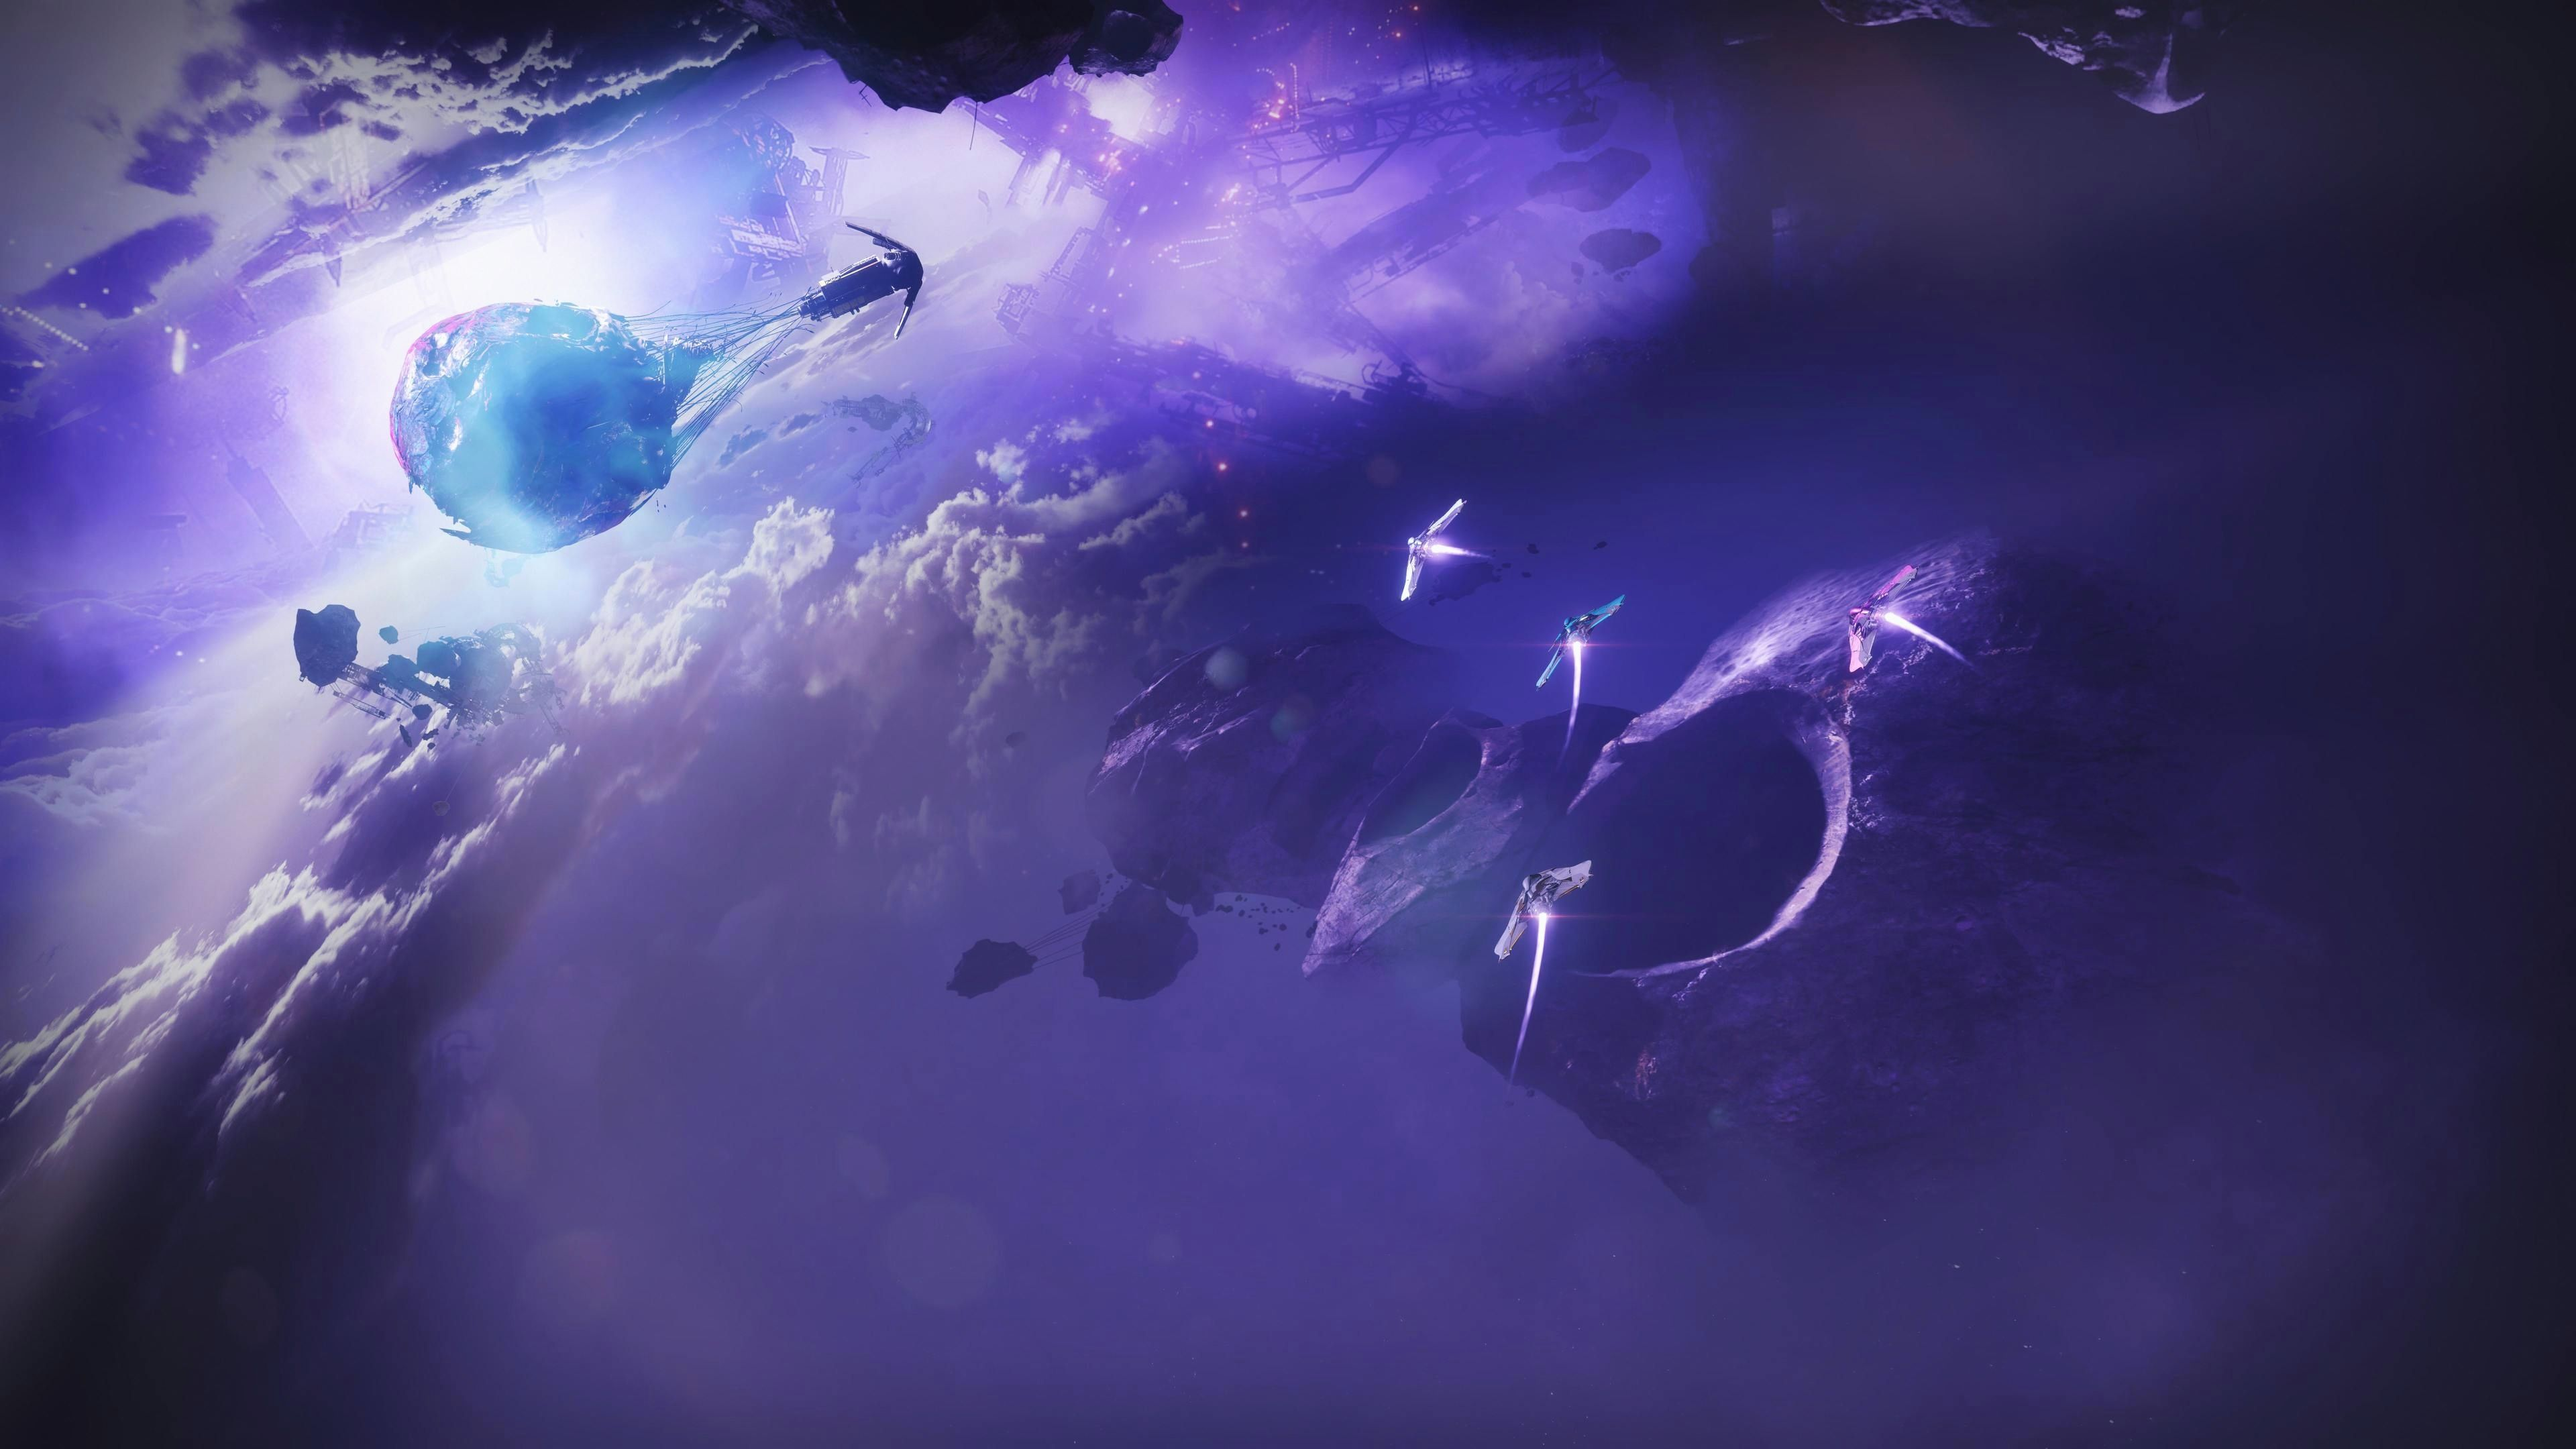 Wallpaper 4k Destiny 2 Fireteam 8k 4k Wallpapers 5k